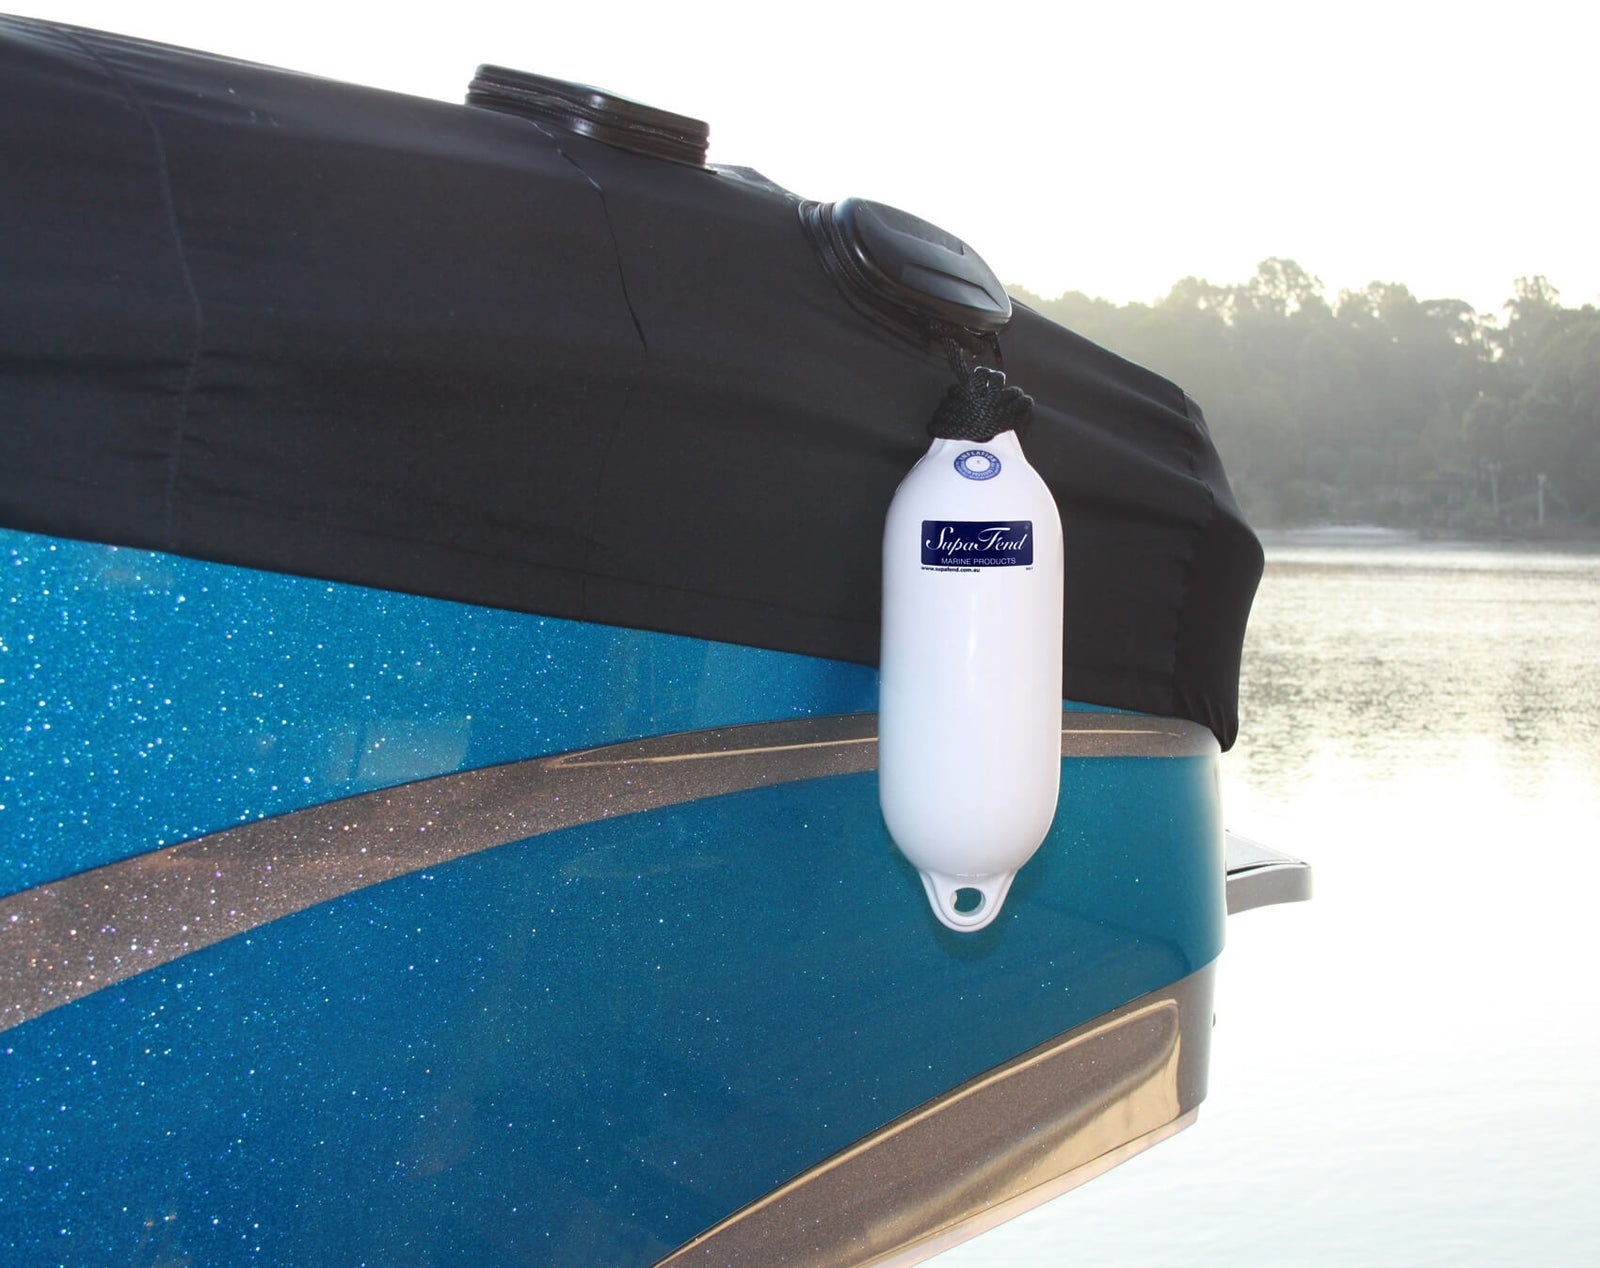 "SupaFend Boat Fender on Boat - 16""x5.5"" (5276012)"